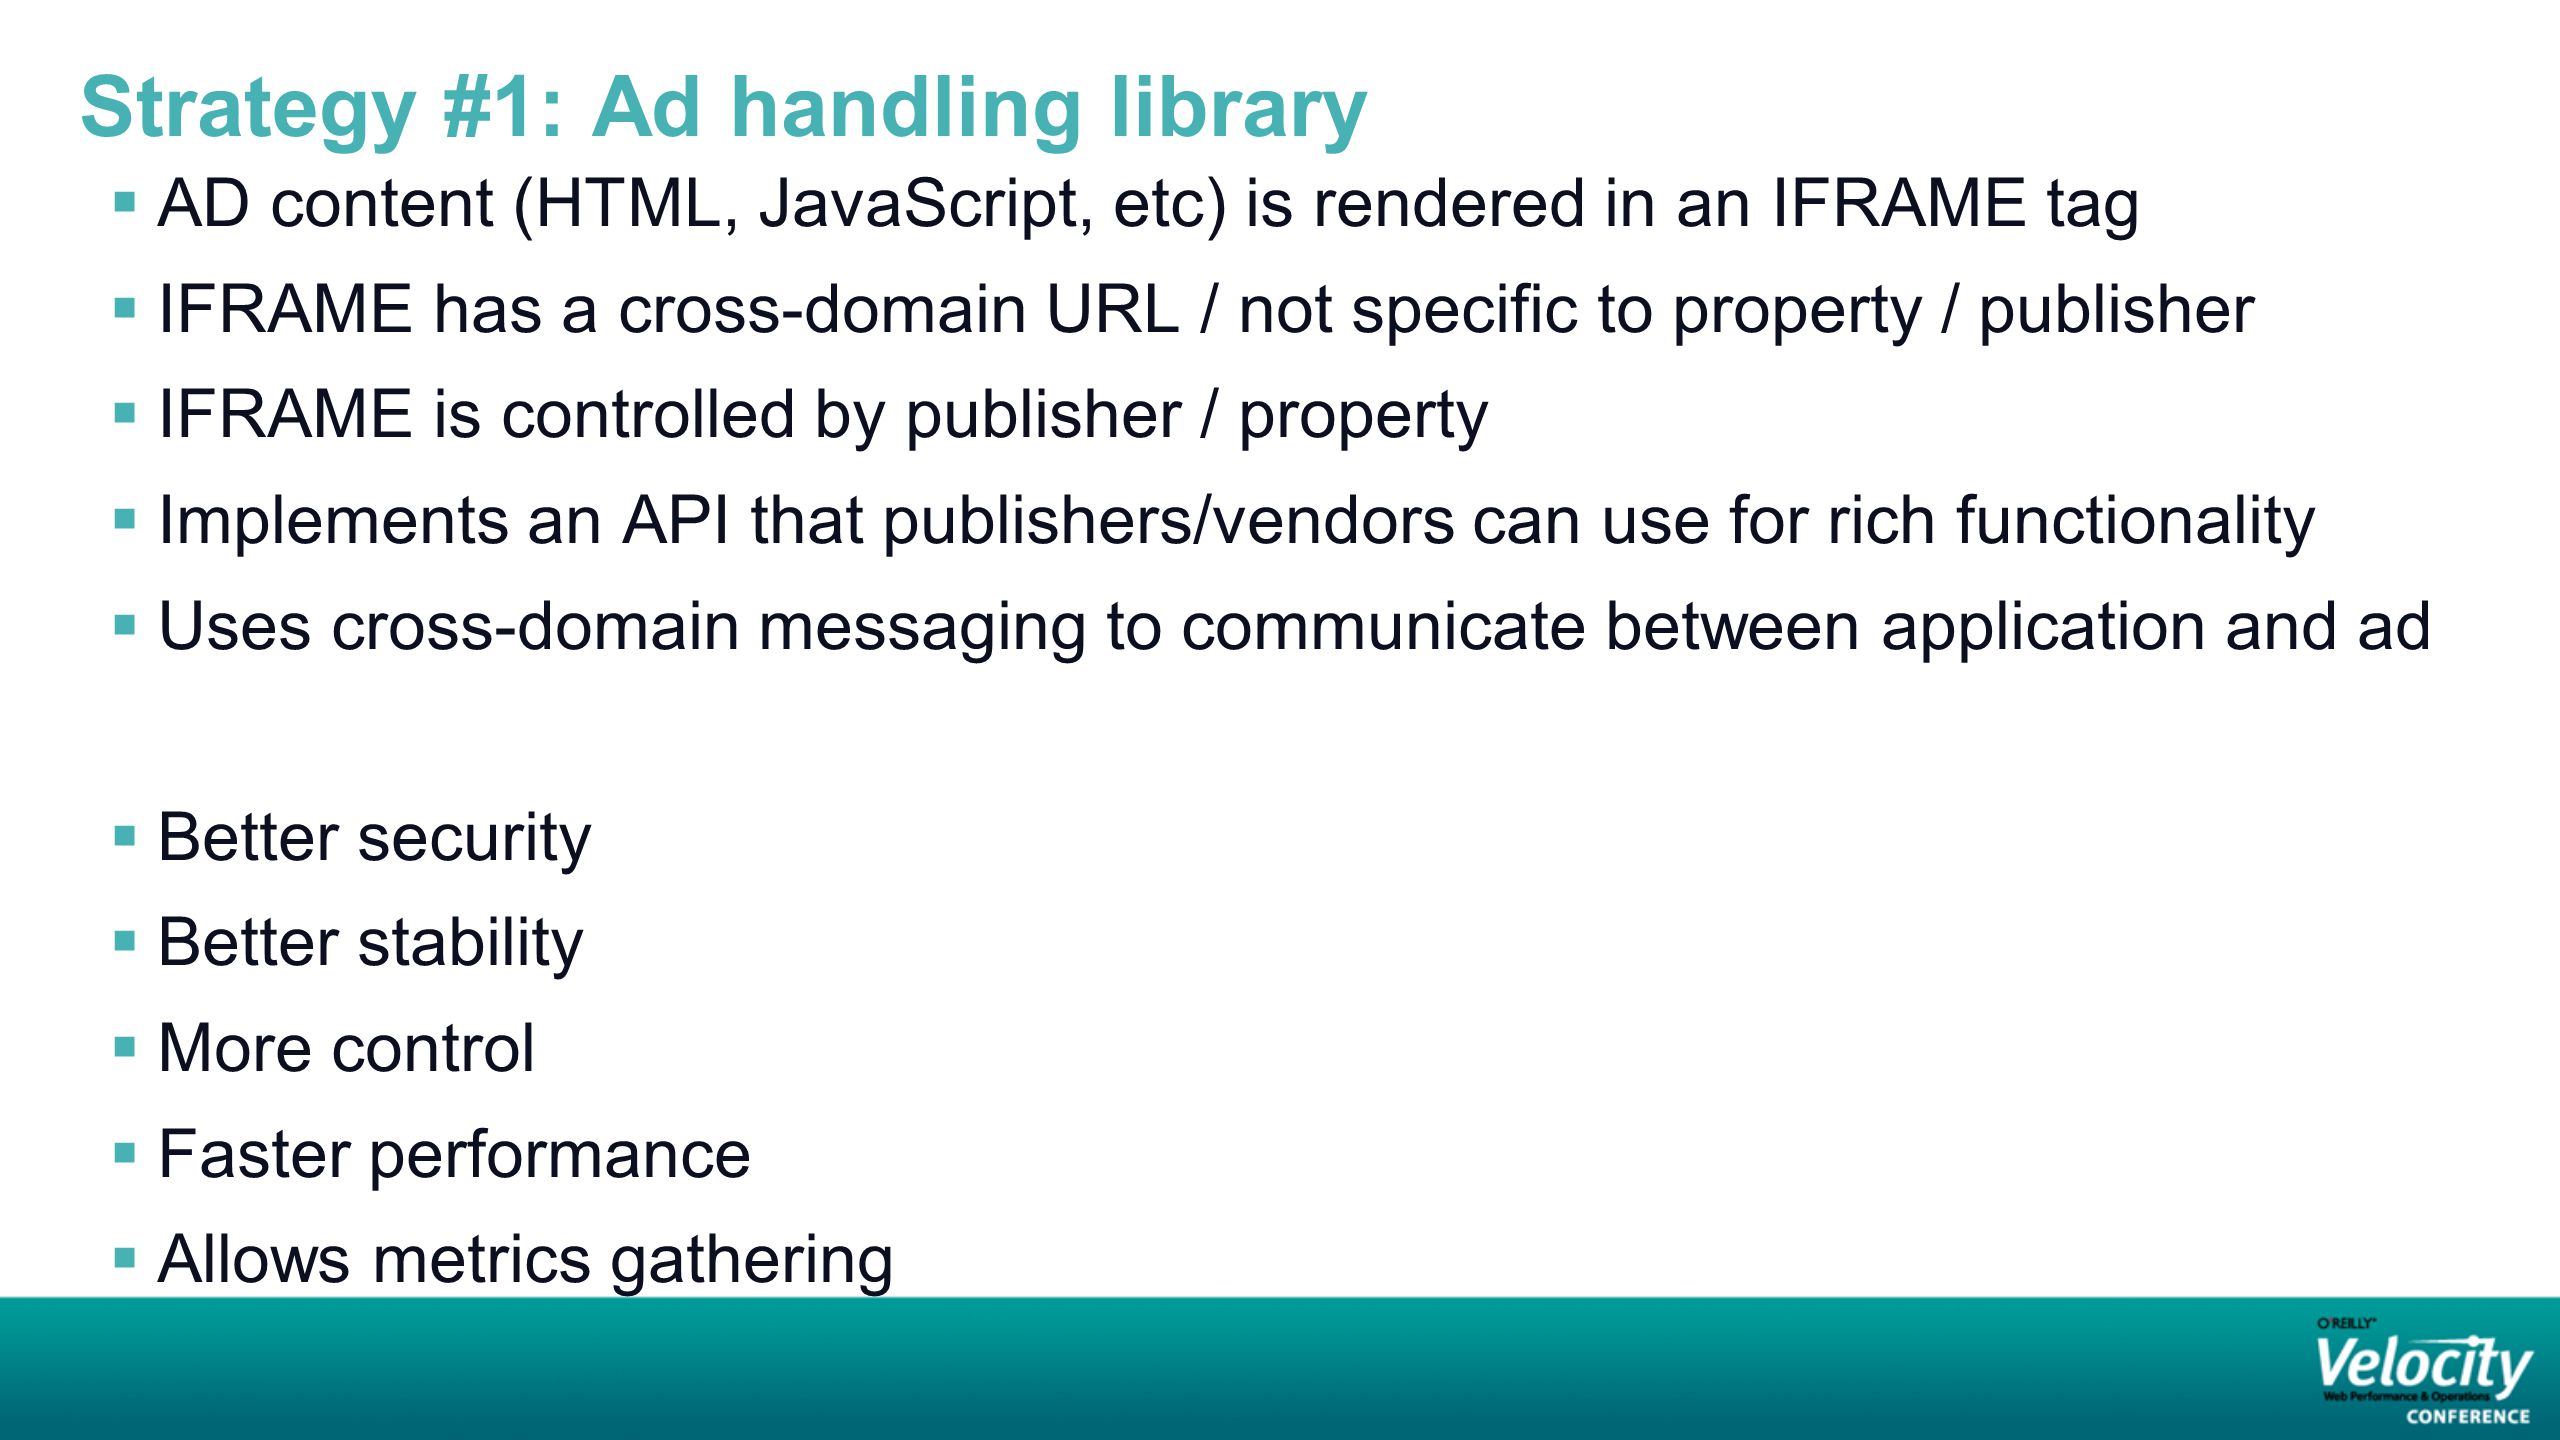 Strategy #1: Ad handling library  AD content (HTML, JavaScript, etc) is rendered in an IFRAME tag  IFRAME has a cross-domain URL / not specific to property / publisher  IFRAME is controlled by publisher / property  Implements an API that publishers/vendors can use for rich functionality  Uses cross-domain messaging to communicate between application and ad  Better security  Better stability  More control  Faster performance  Allows metrics gathering